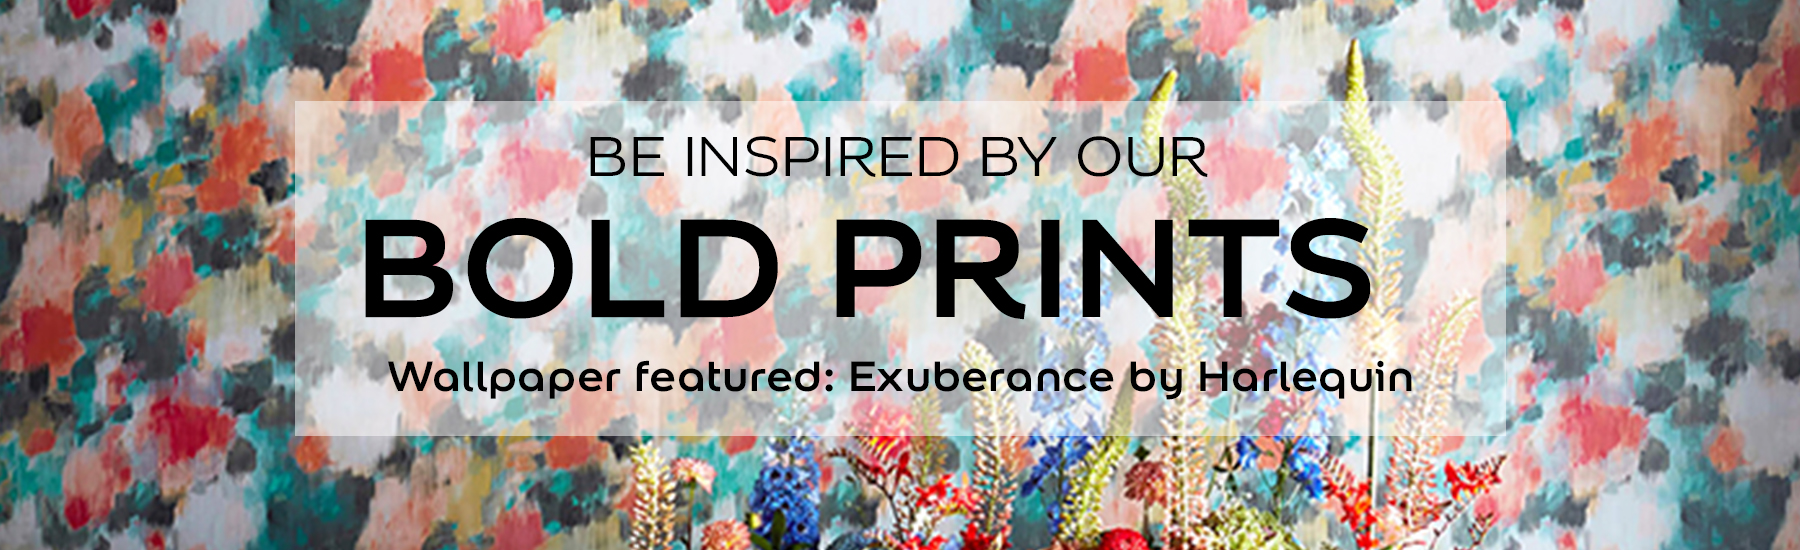 BE INSPIRED BY OUR BOLD PRINTS